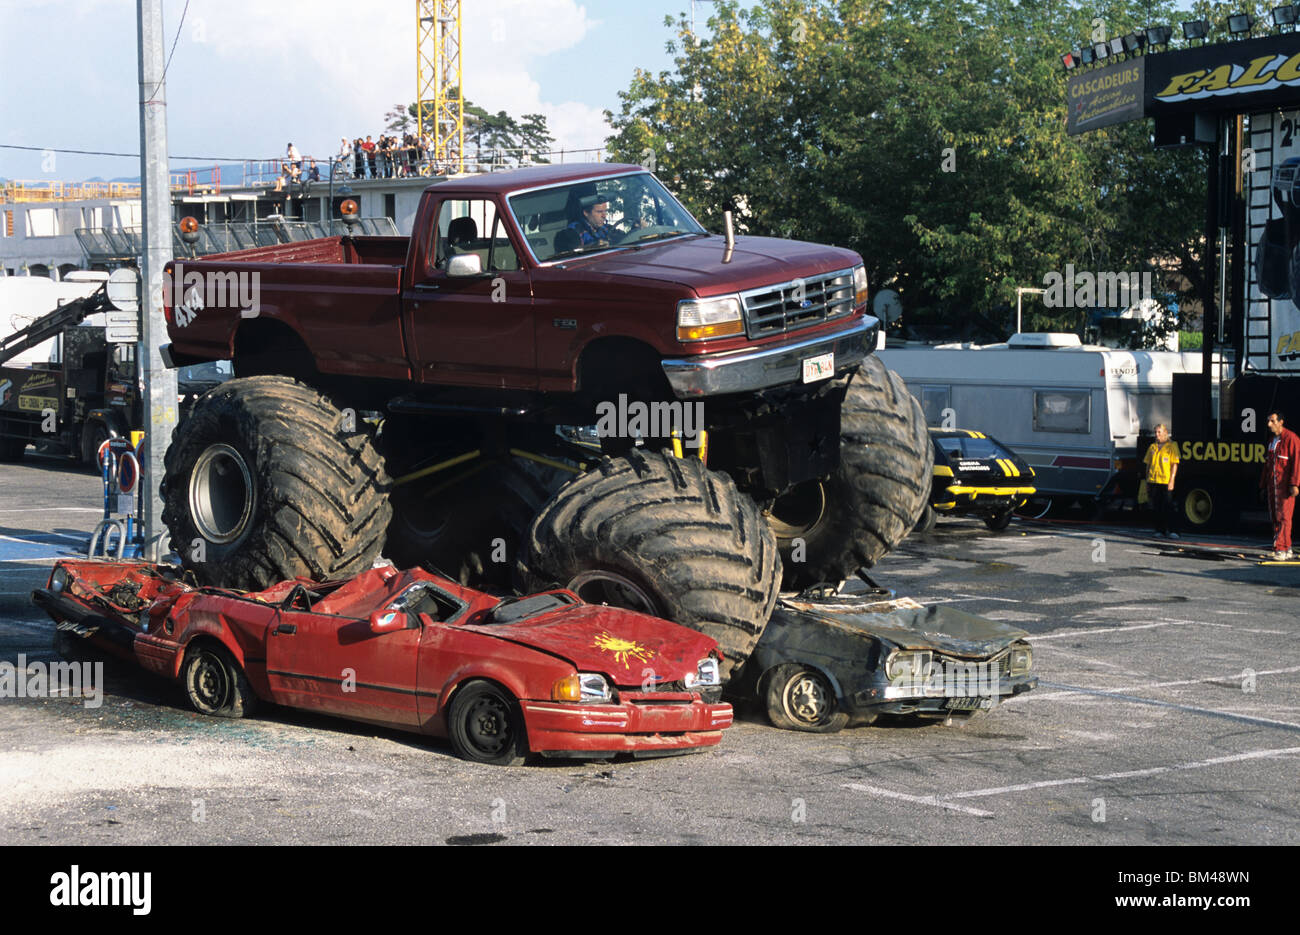 Giant Truck Modified Or Customized Car With Oversize Tyres